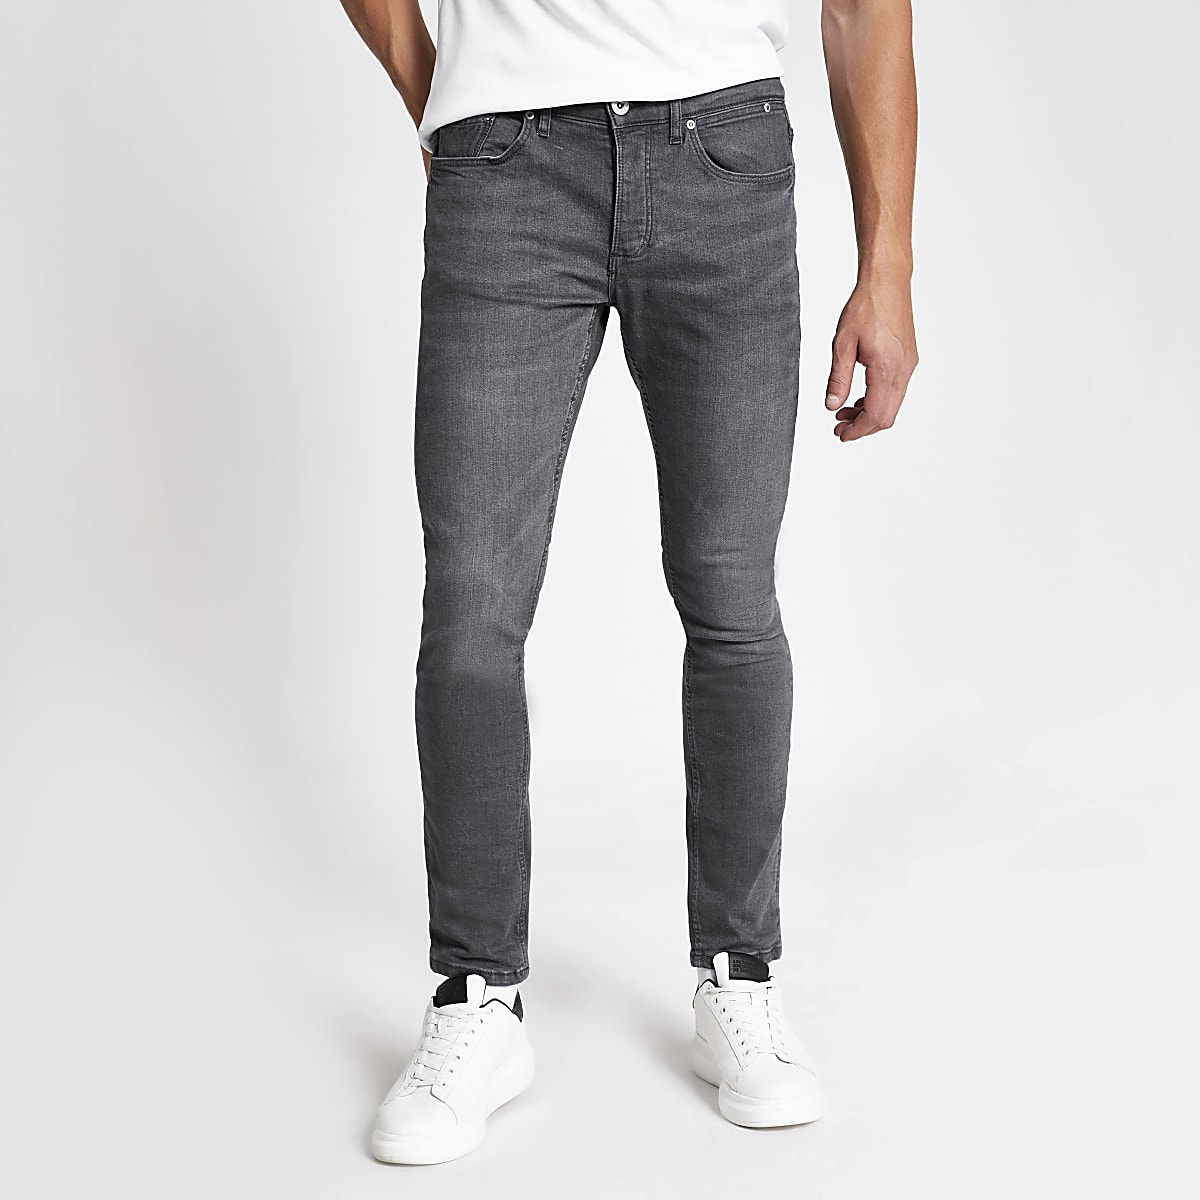 Extrem Grey Sid skinny fit jeans | River Island YV36